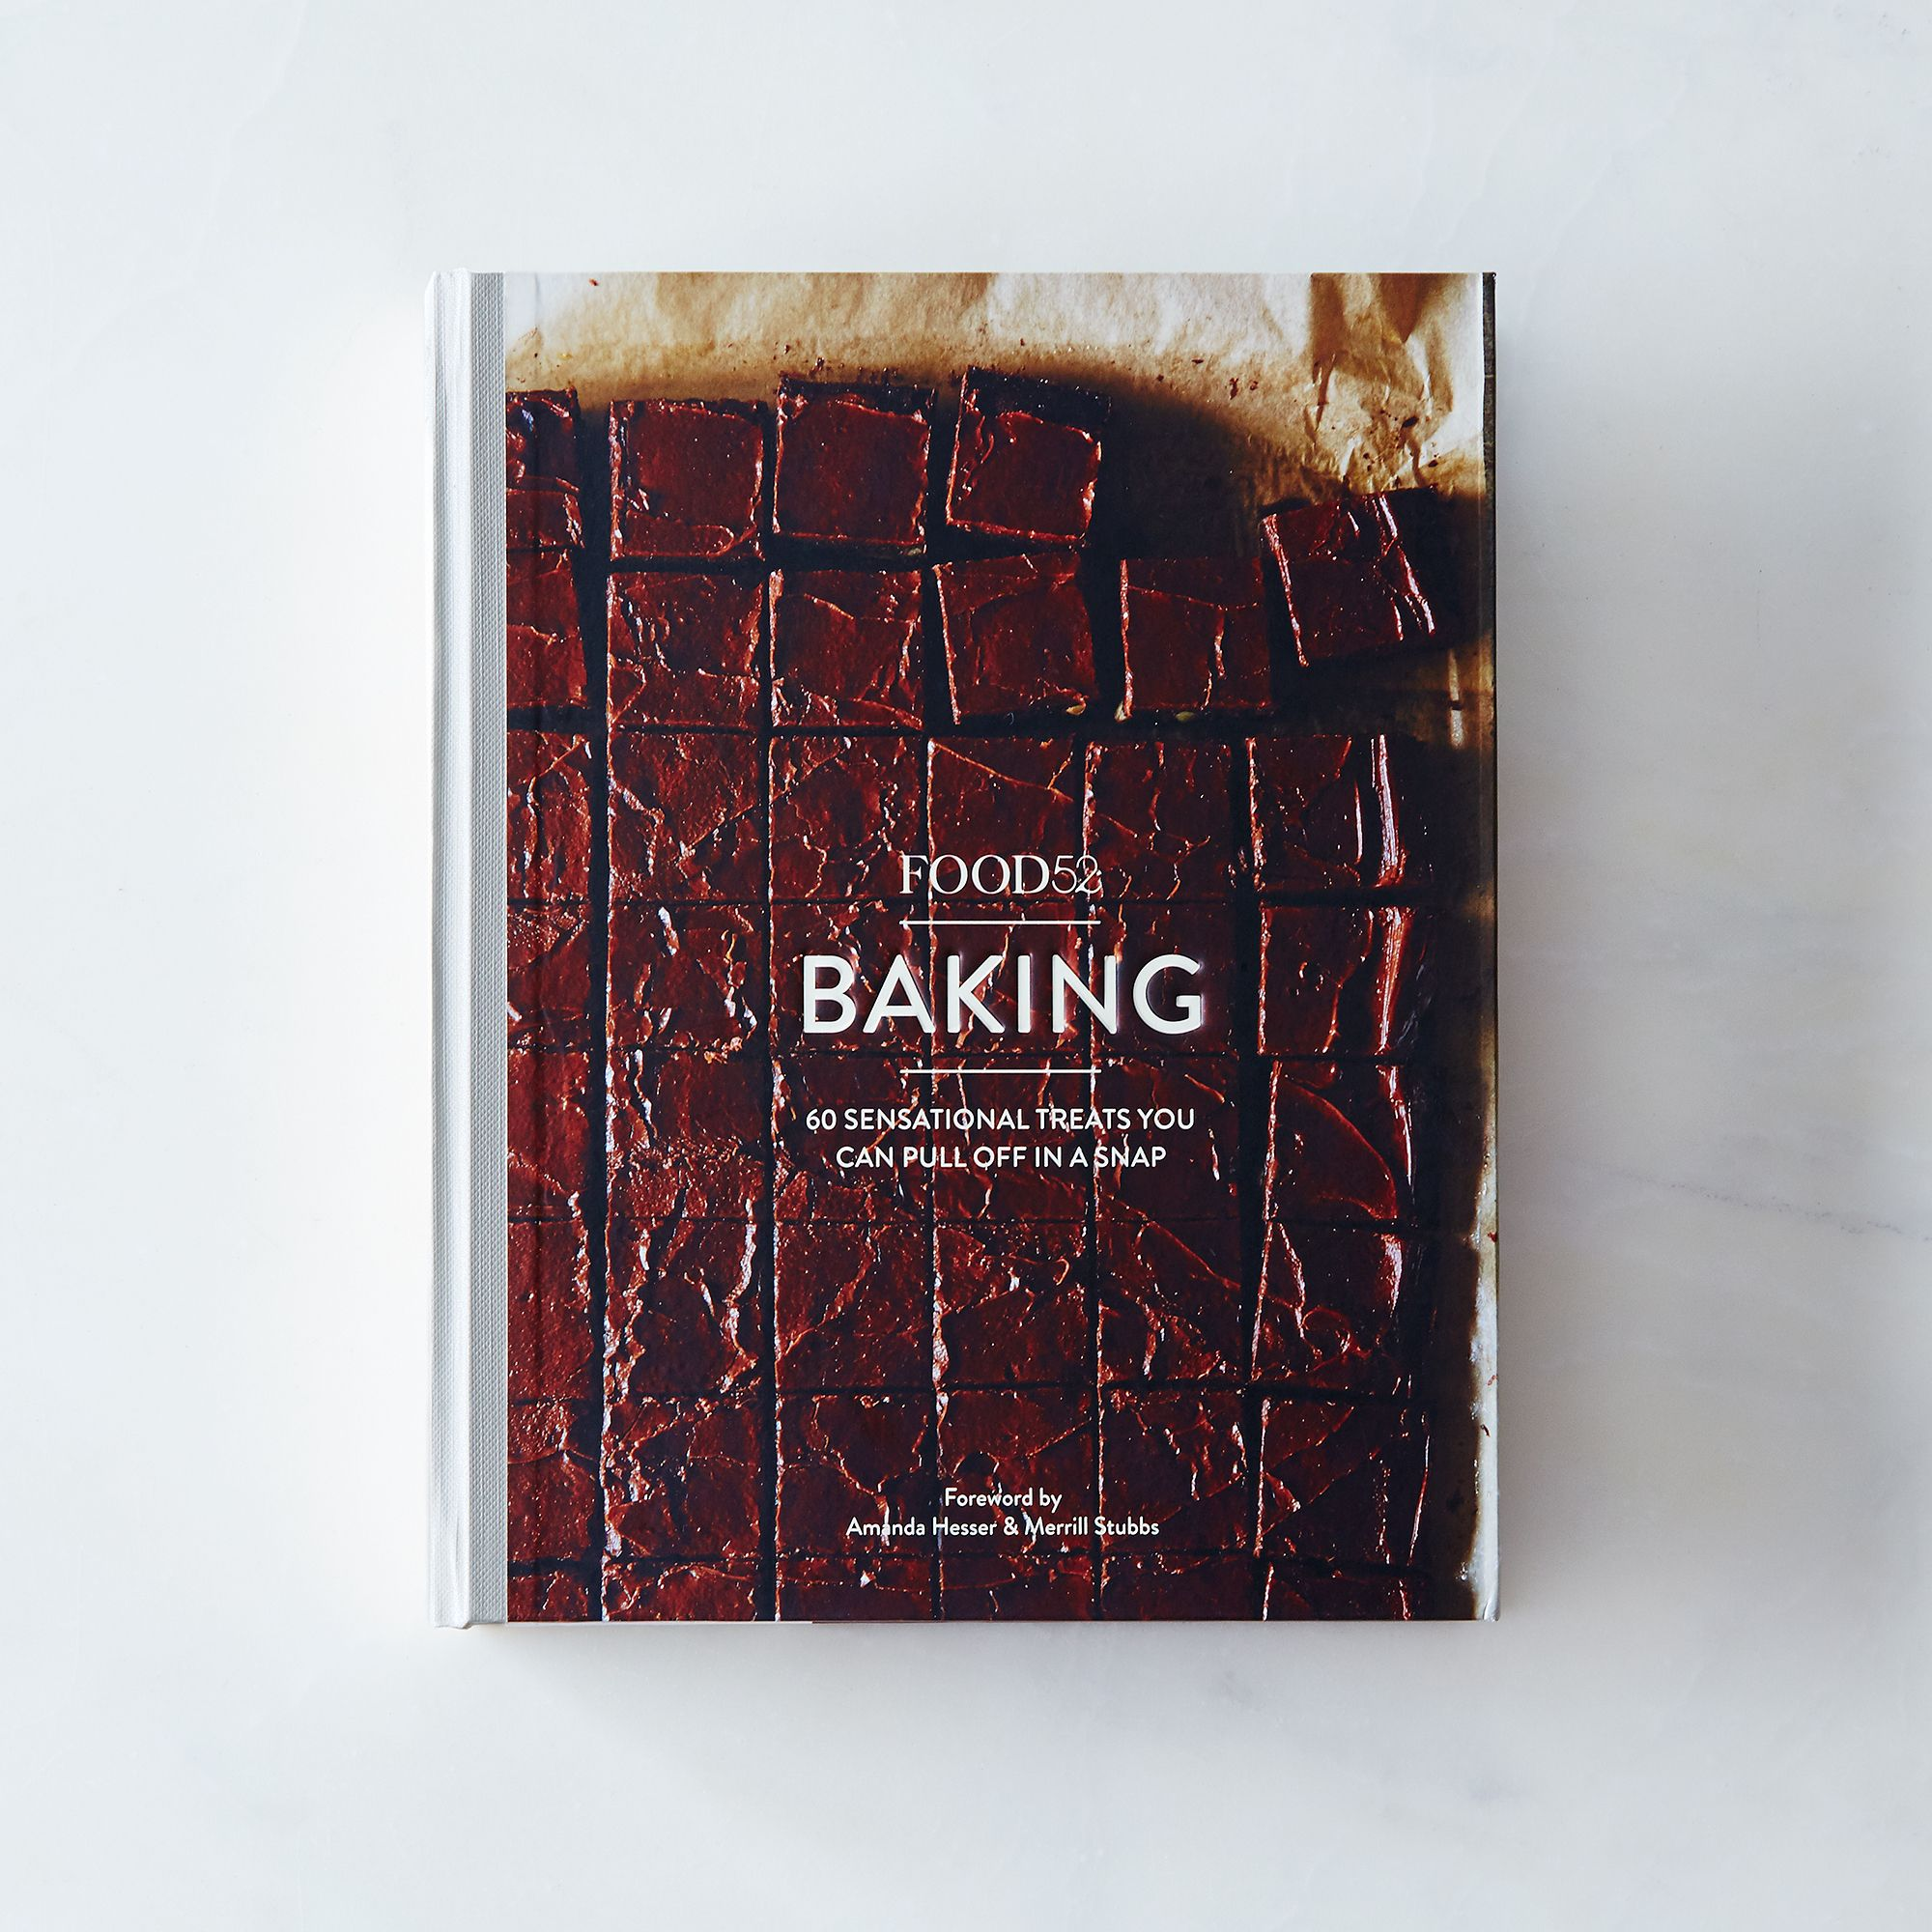 945e43ea c3ac 11e5 9f5e 0ec3b80ccb89  2015 0527 food52 baking book james ransom 015